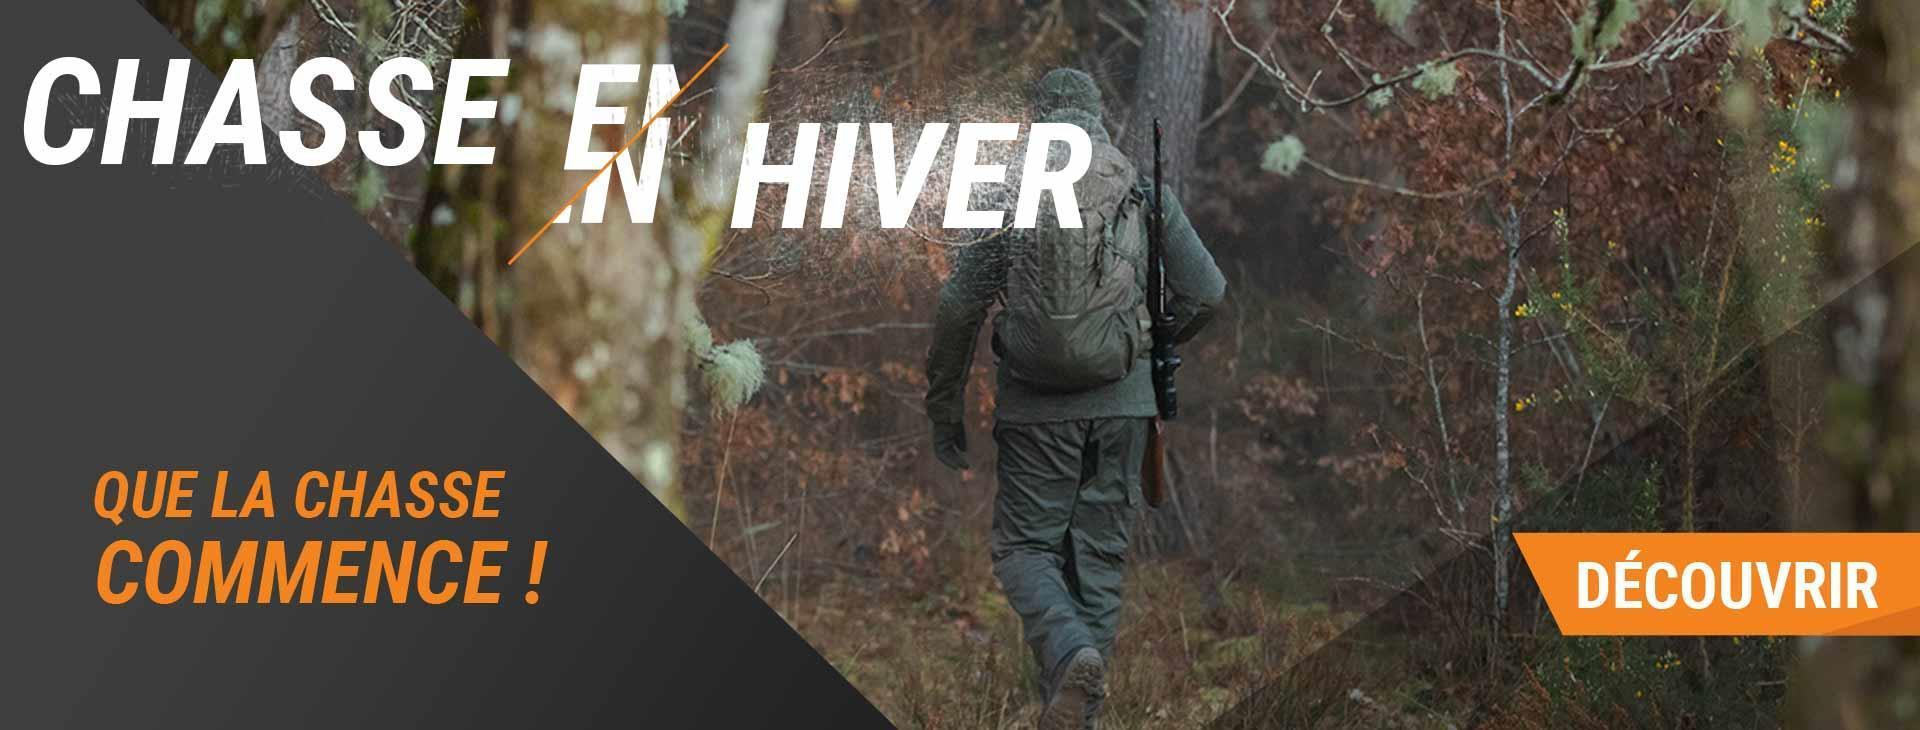 Chasse en hiver